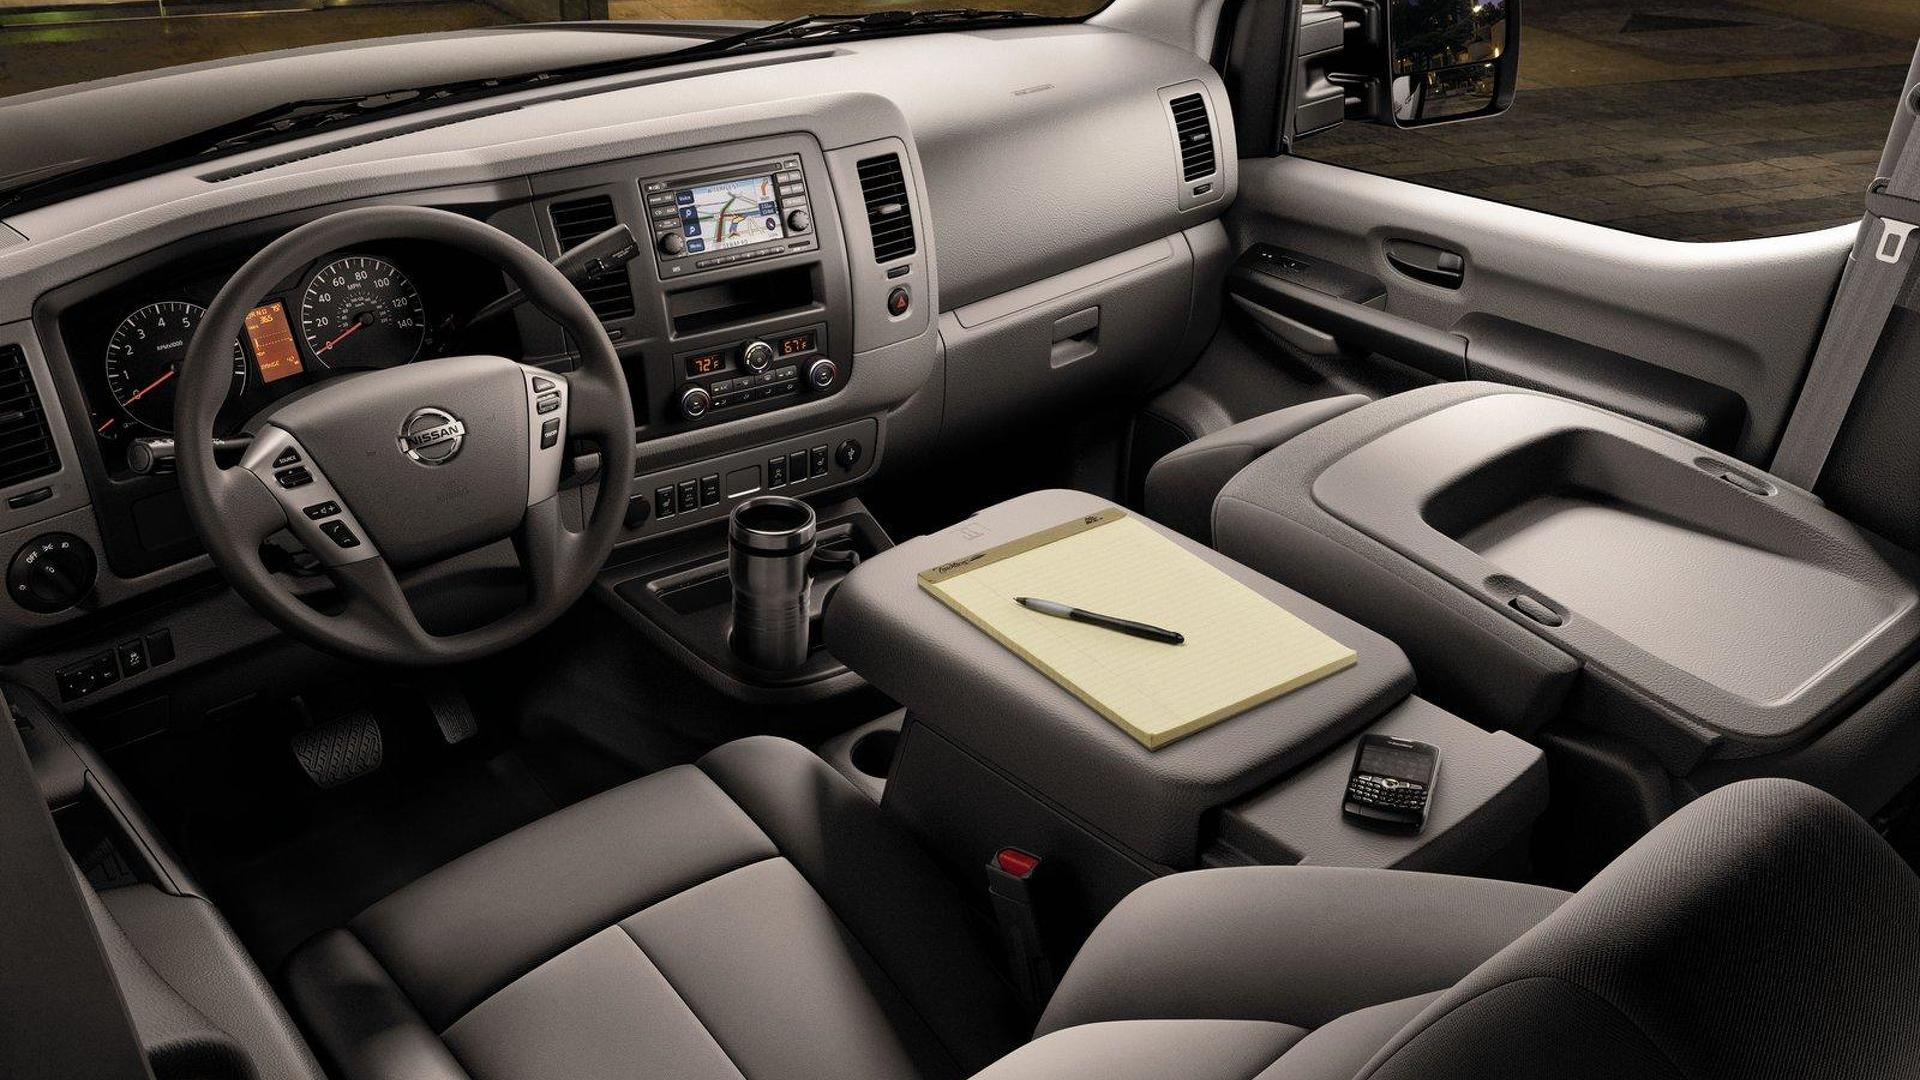 Nissan announces all new 2012 NV3500 HD passenger van for North America